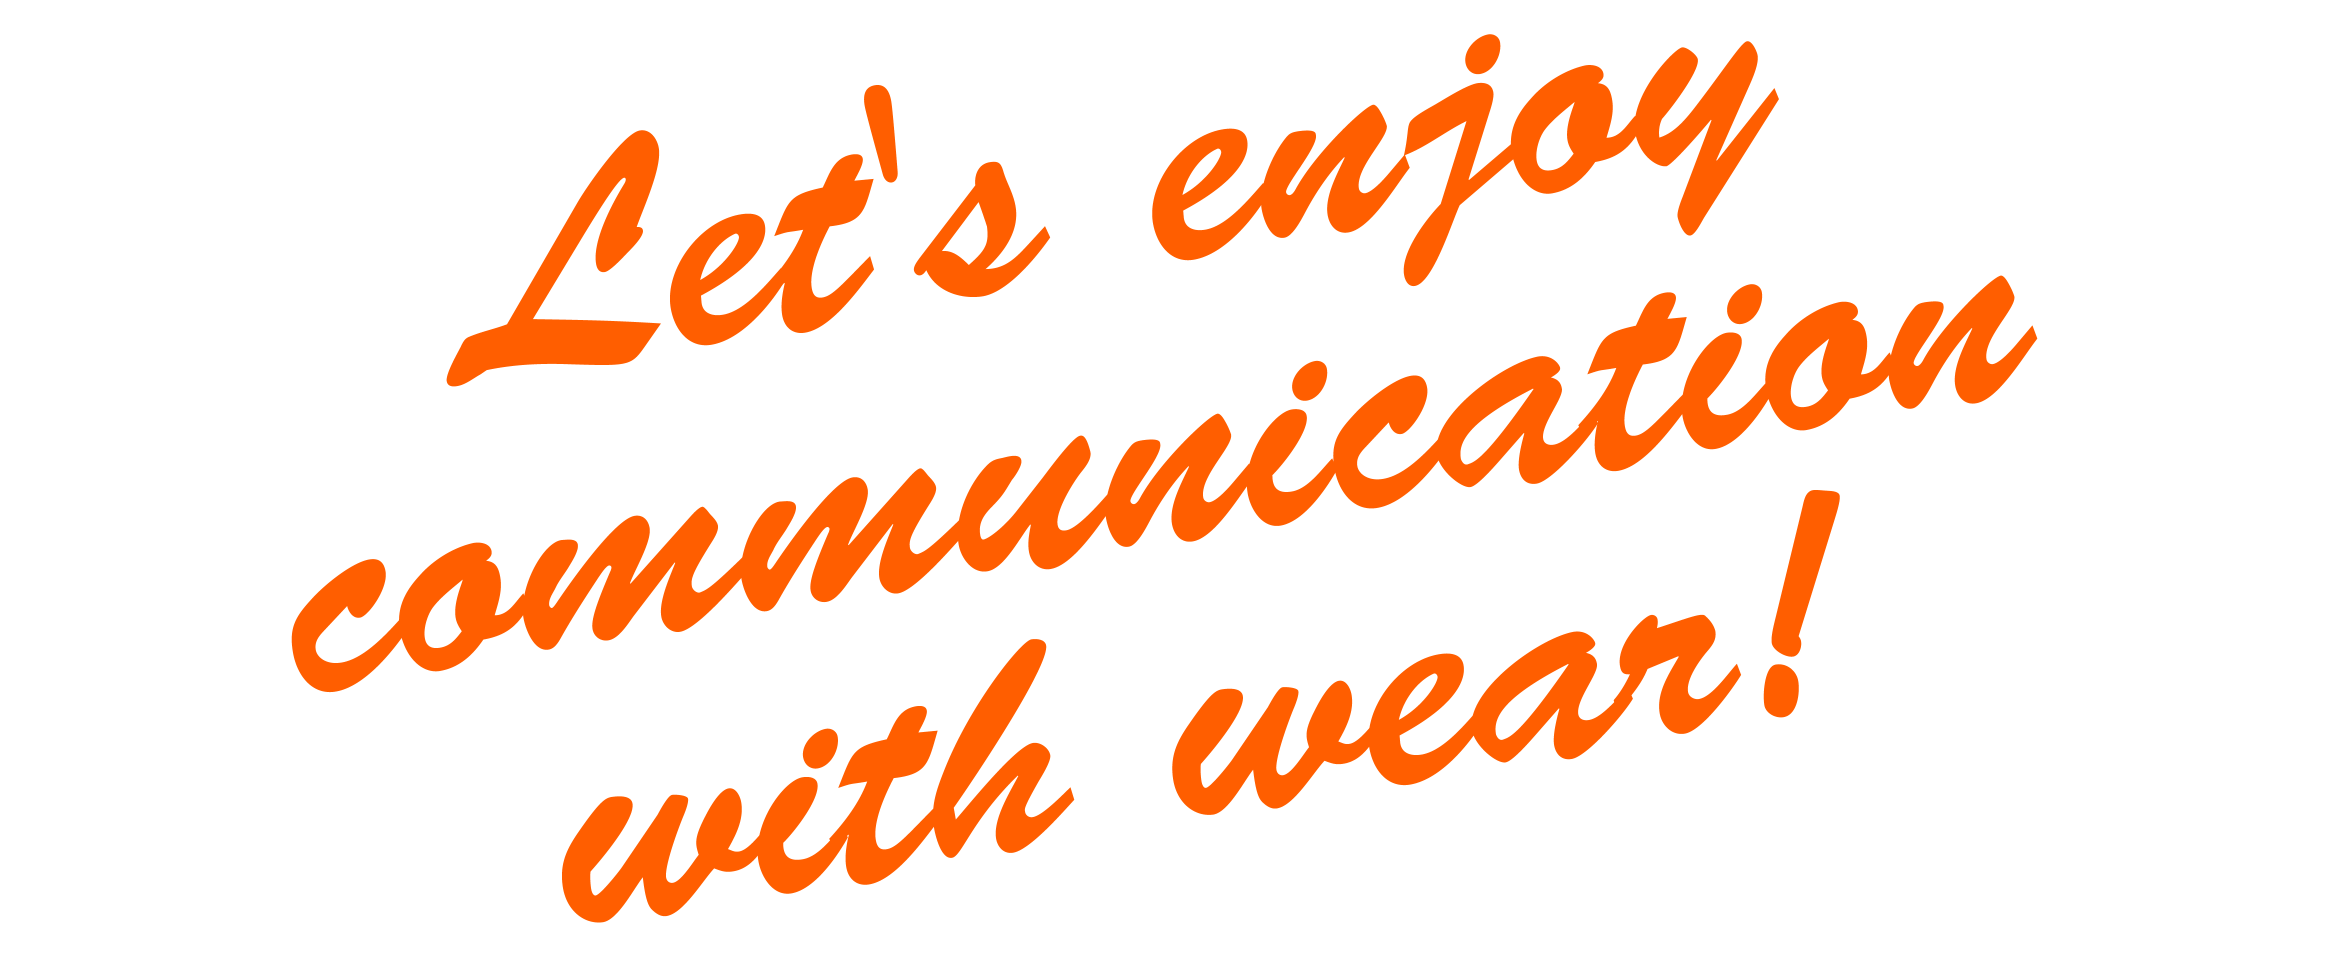 Let's enjoy communication with wear!